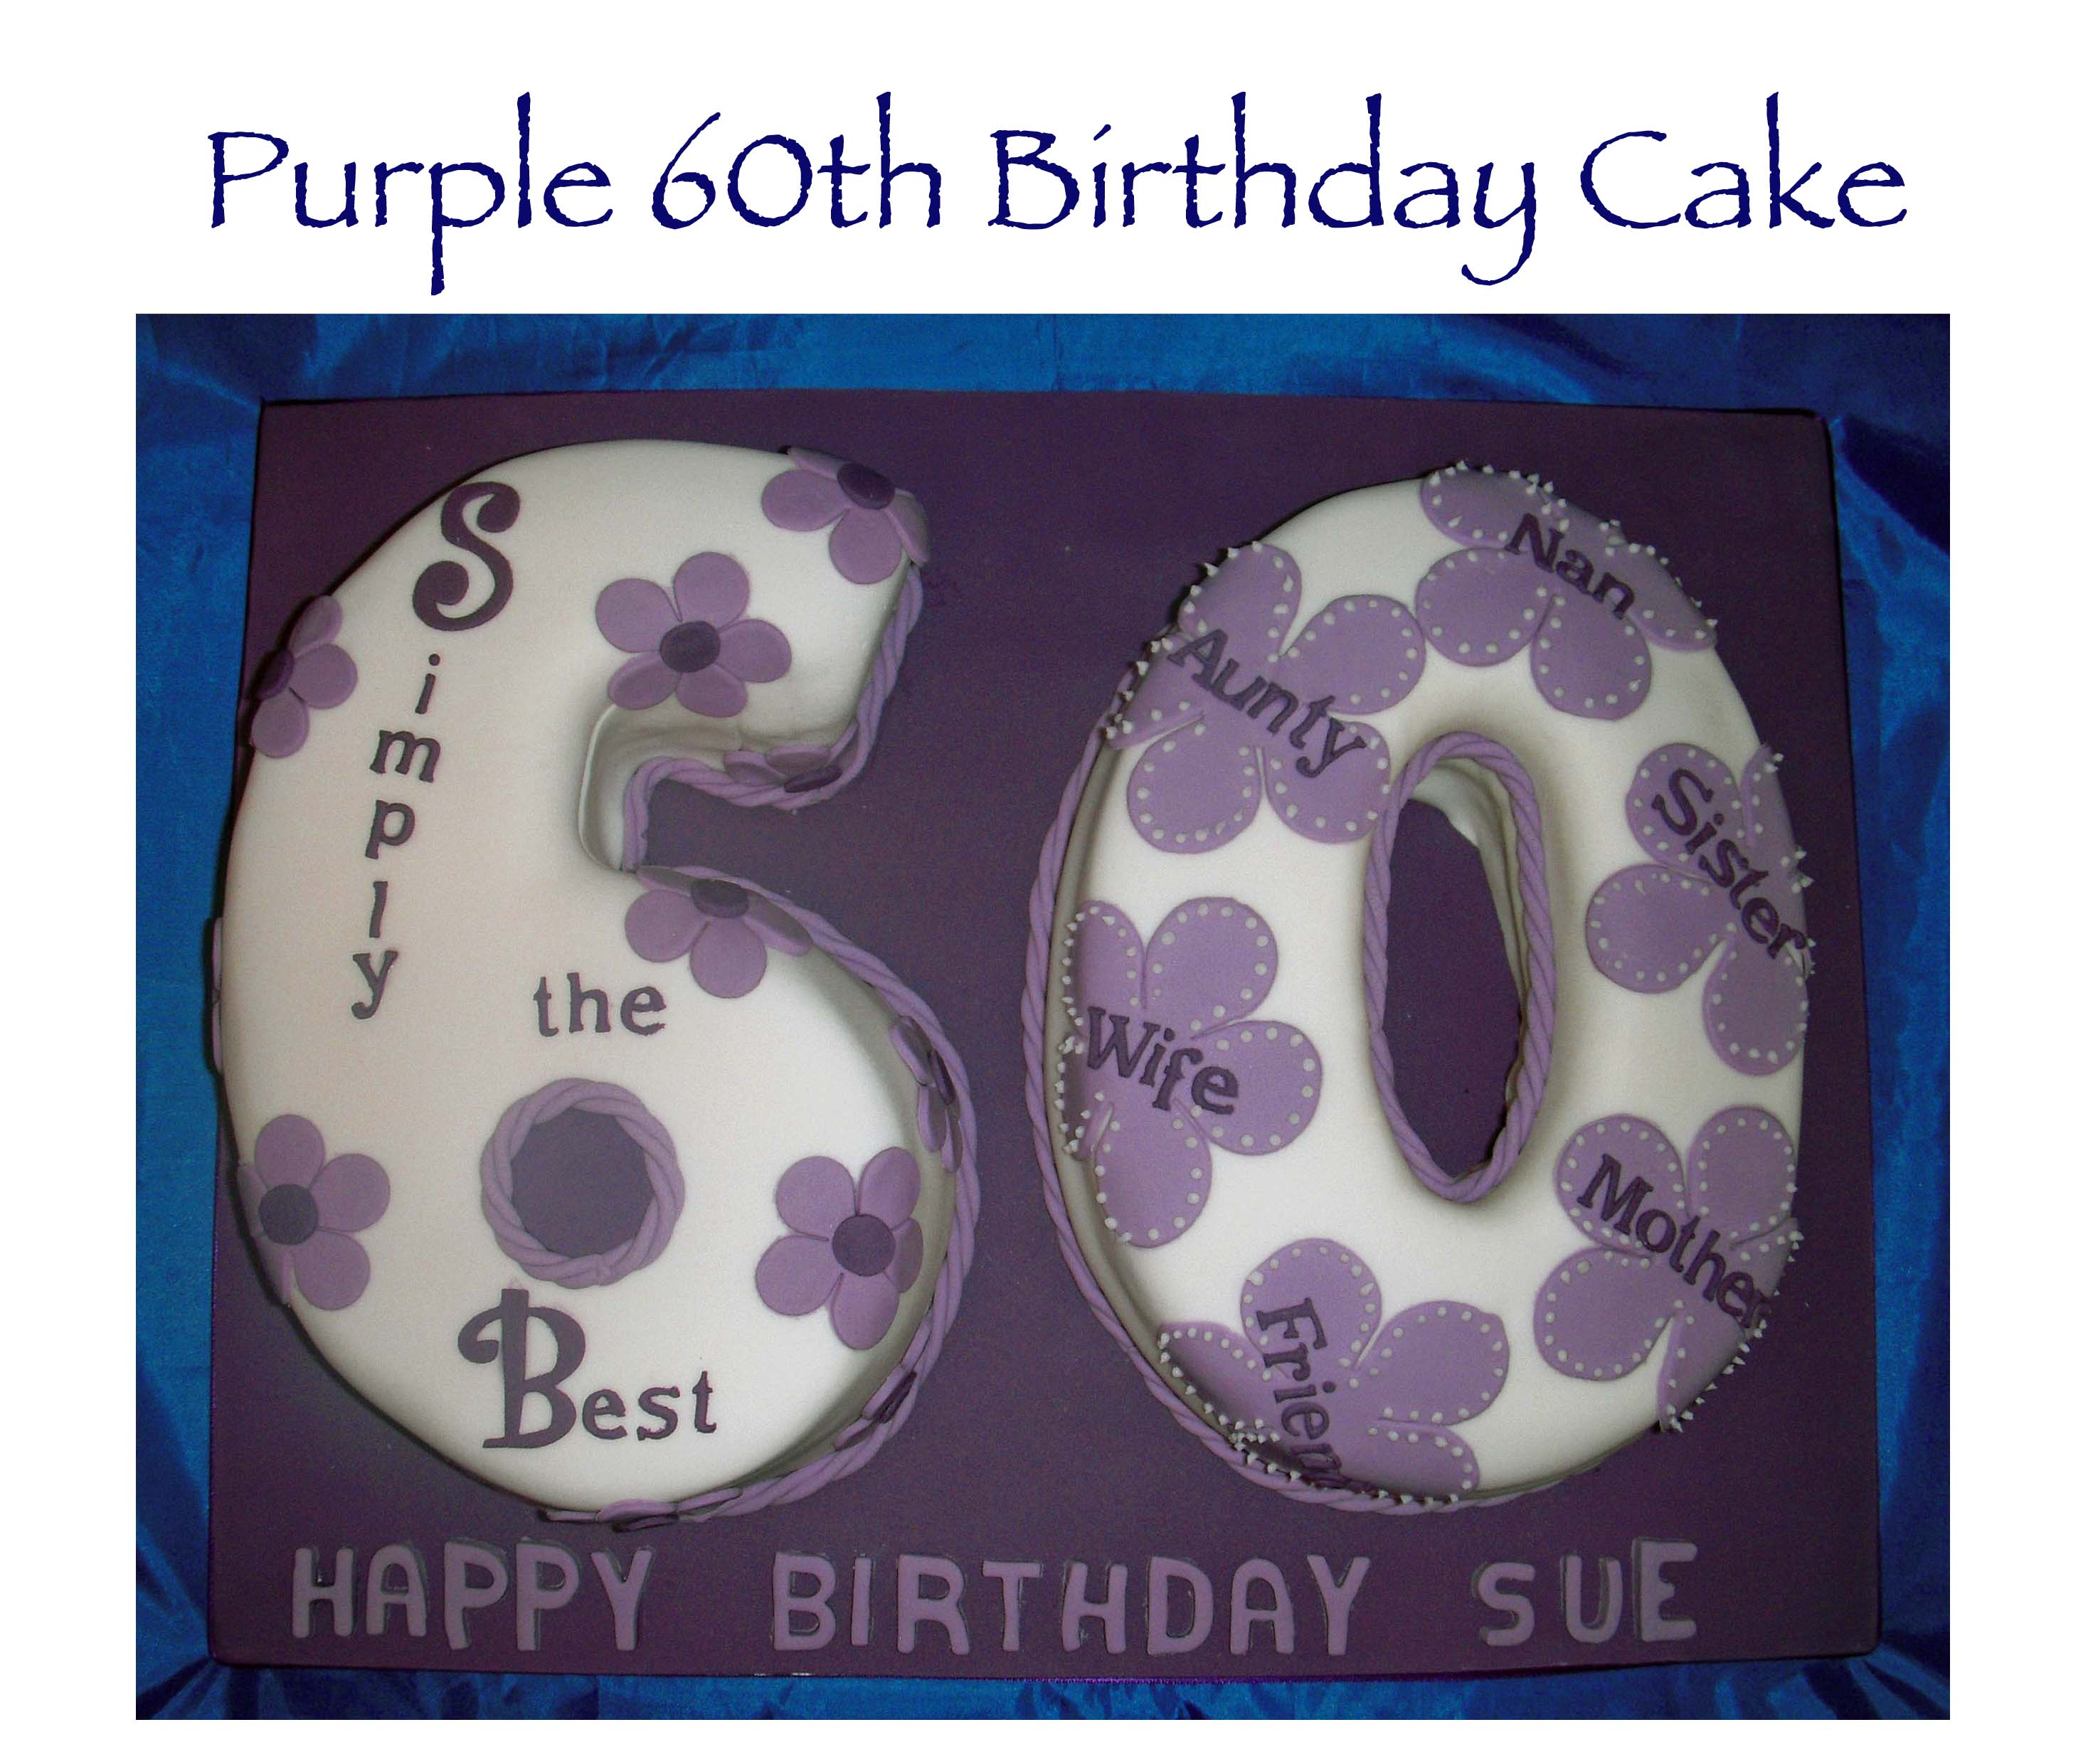 Purple 60th Birthday Cake